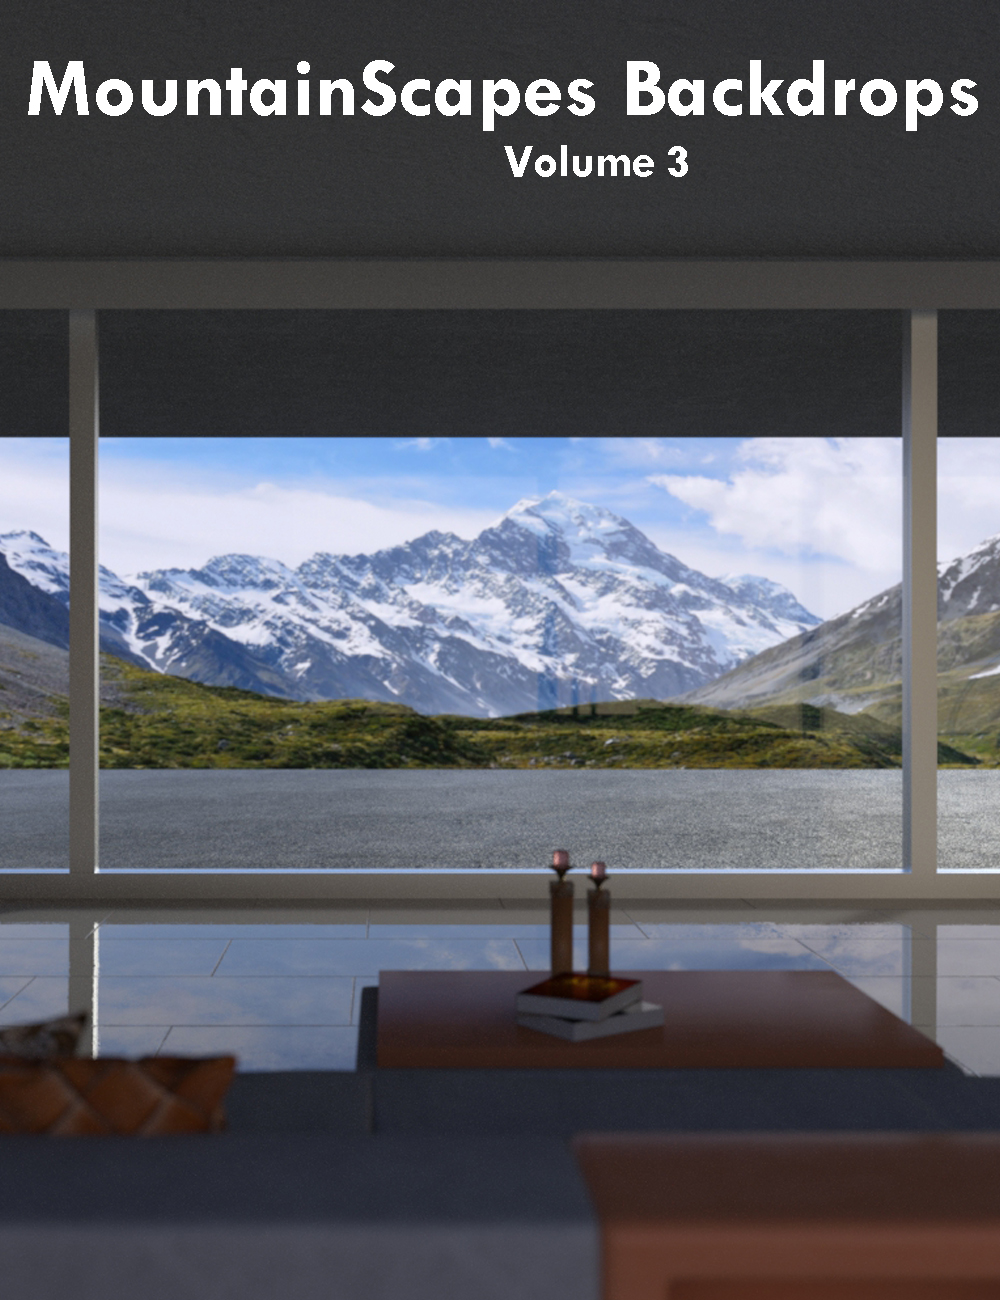 MountainScapes Backdrops Volume 3 by: IlluminationImagineX, 3D Models by Daz 3D